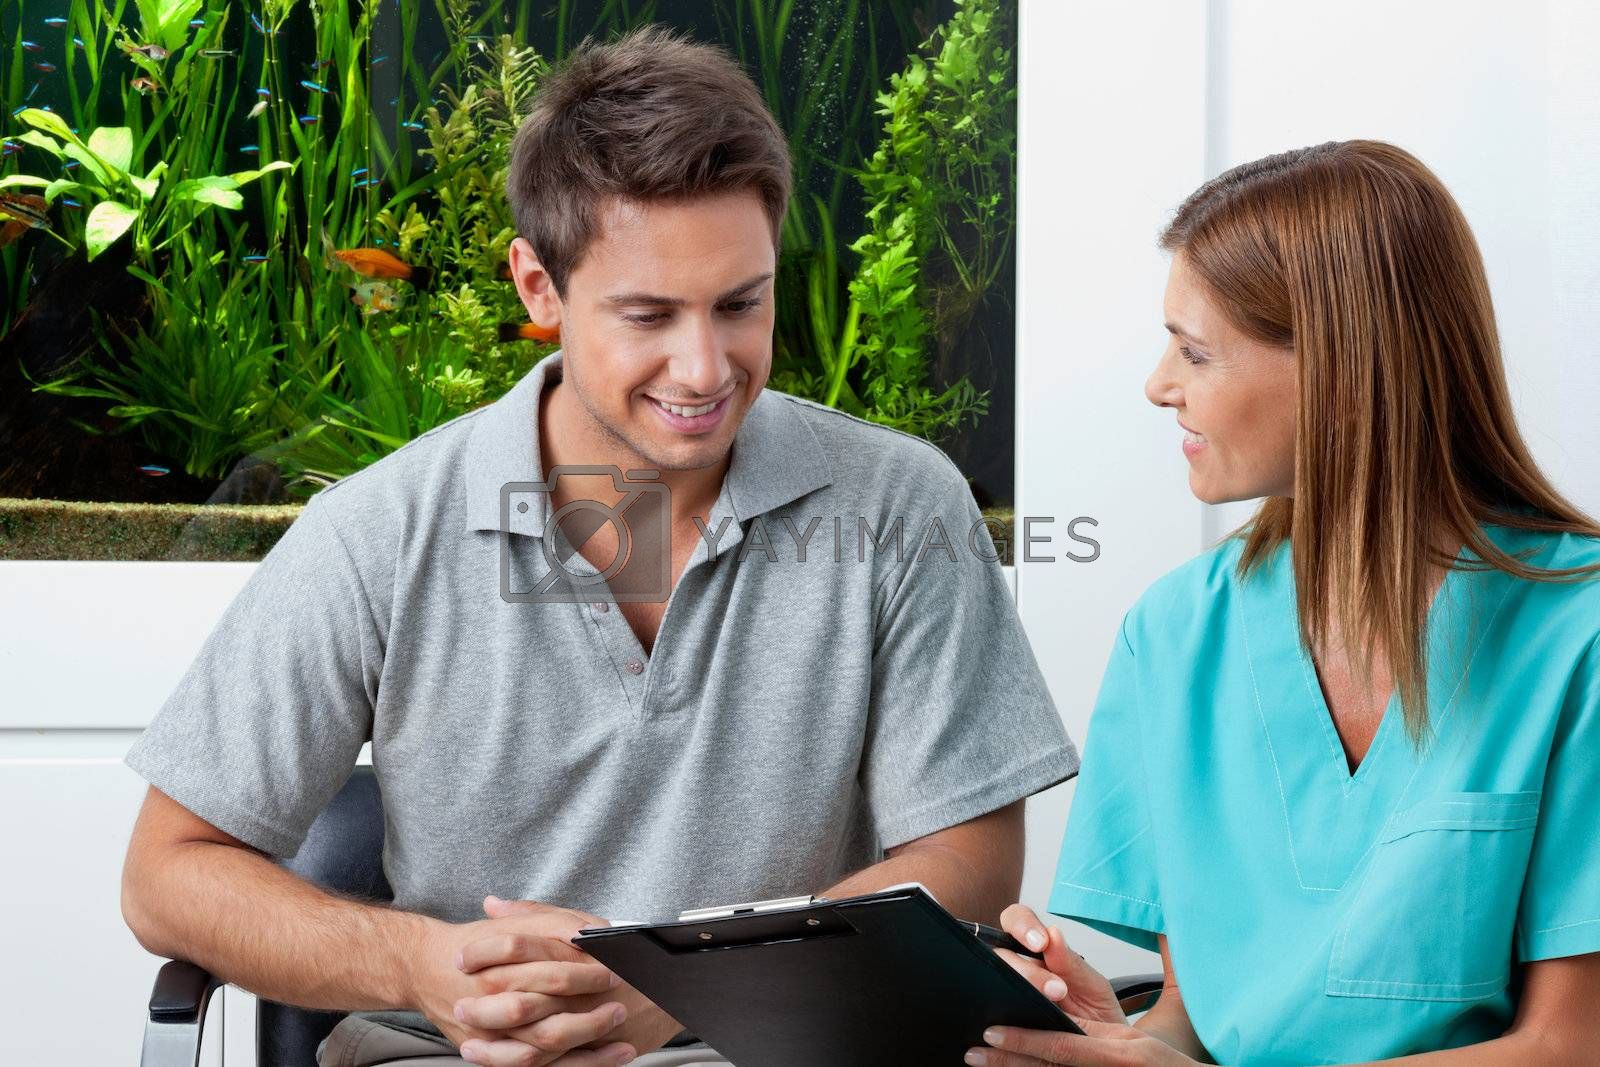 Female dentist with clipboard explaining something to man in clinic